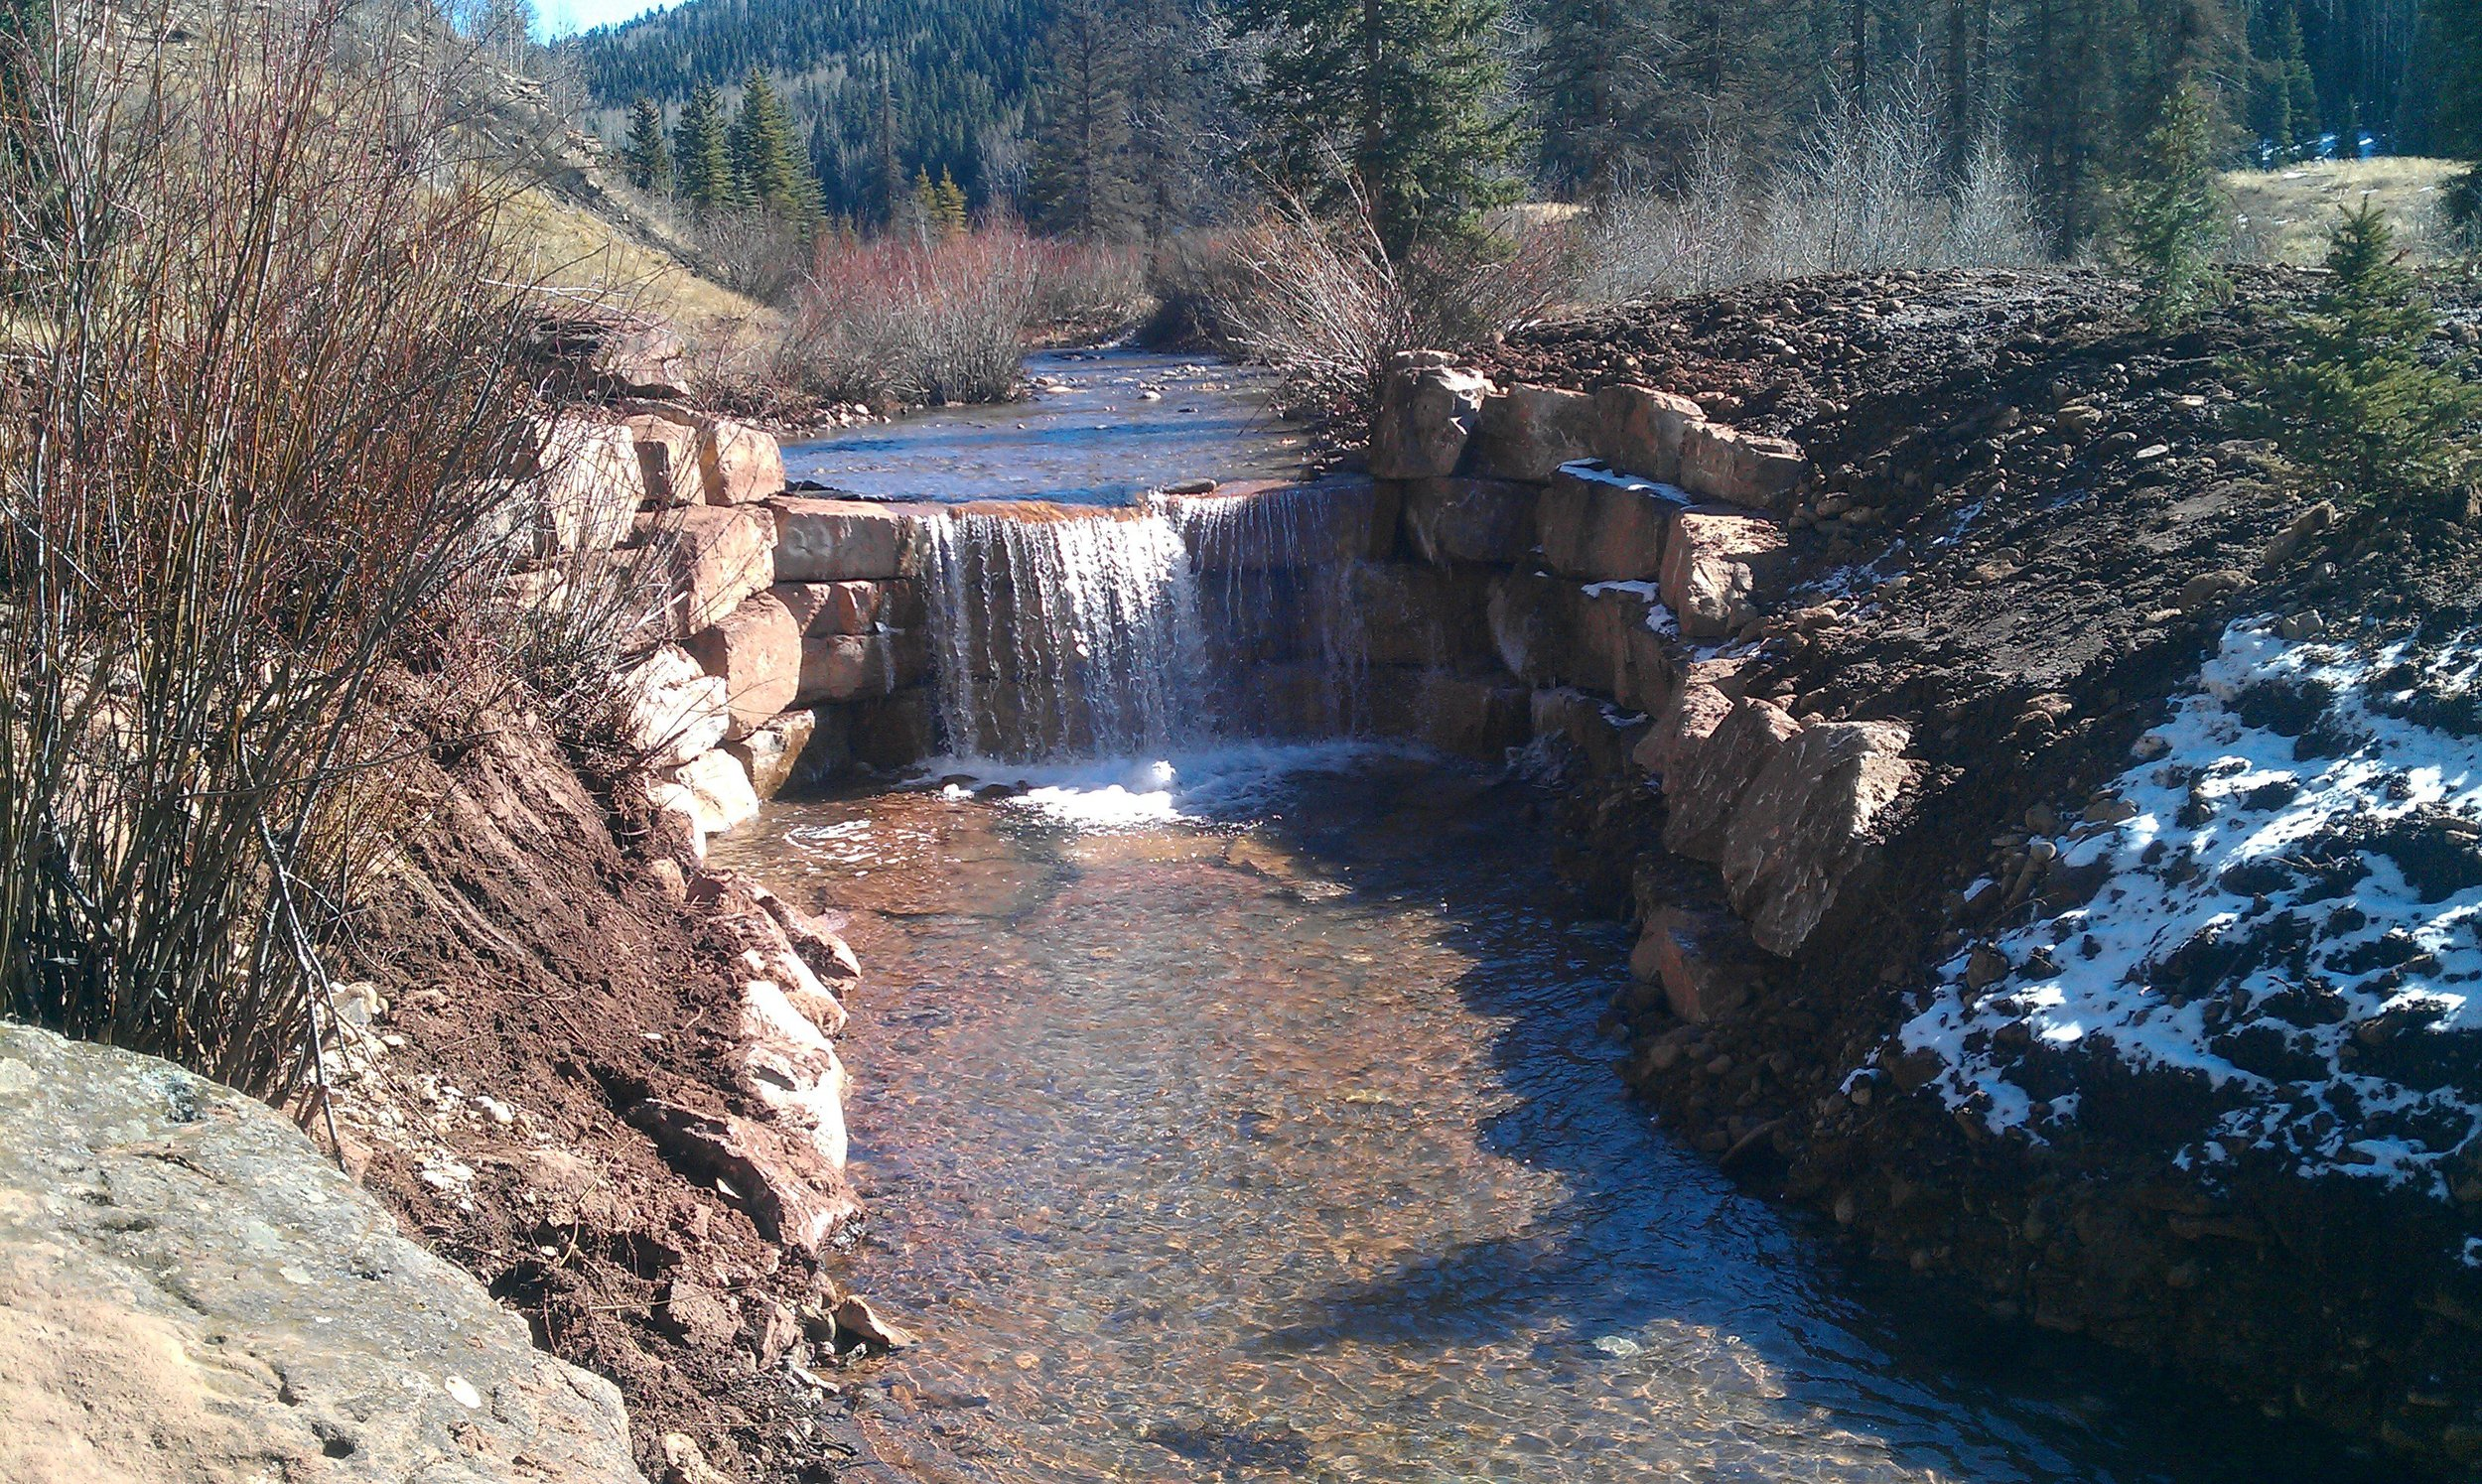 A fish barrier installed to protect Hermosa Creek native trout, through a partnership including the San Juan National Forest, Colorado Parks and Wildlife, and Trout Unlimited.  More such projects will be needed to secure homes for the newly-rediscovered San Juan lineage cutthroat.